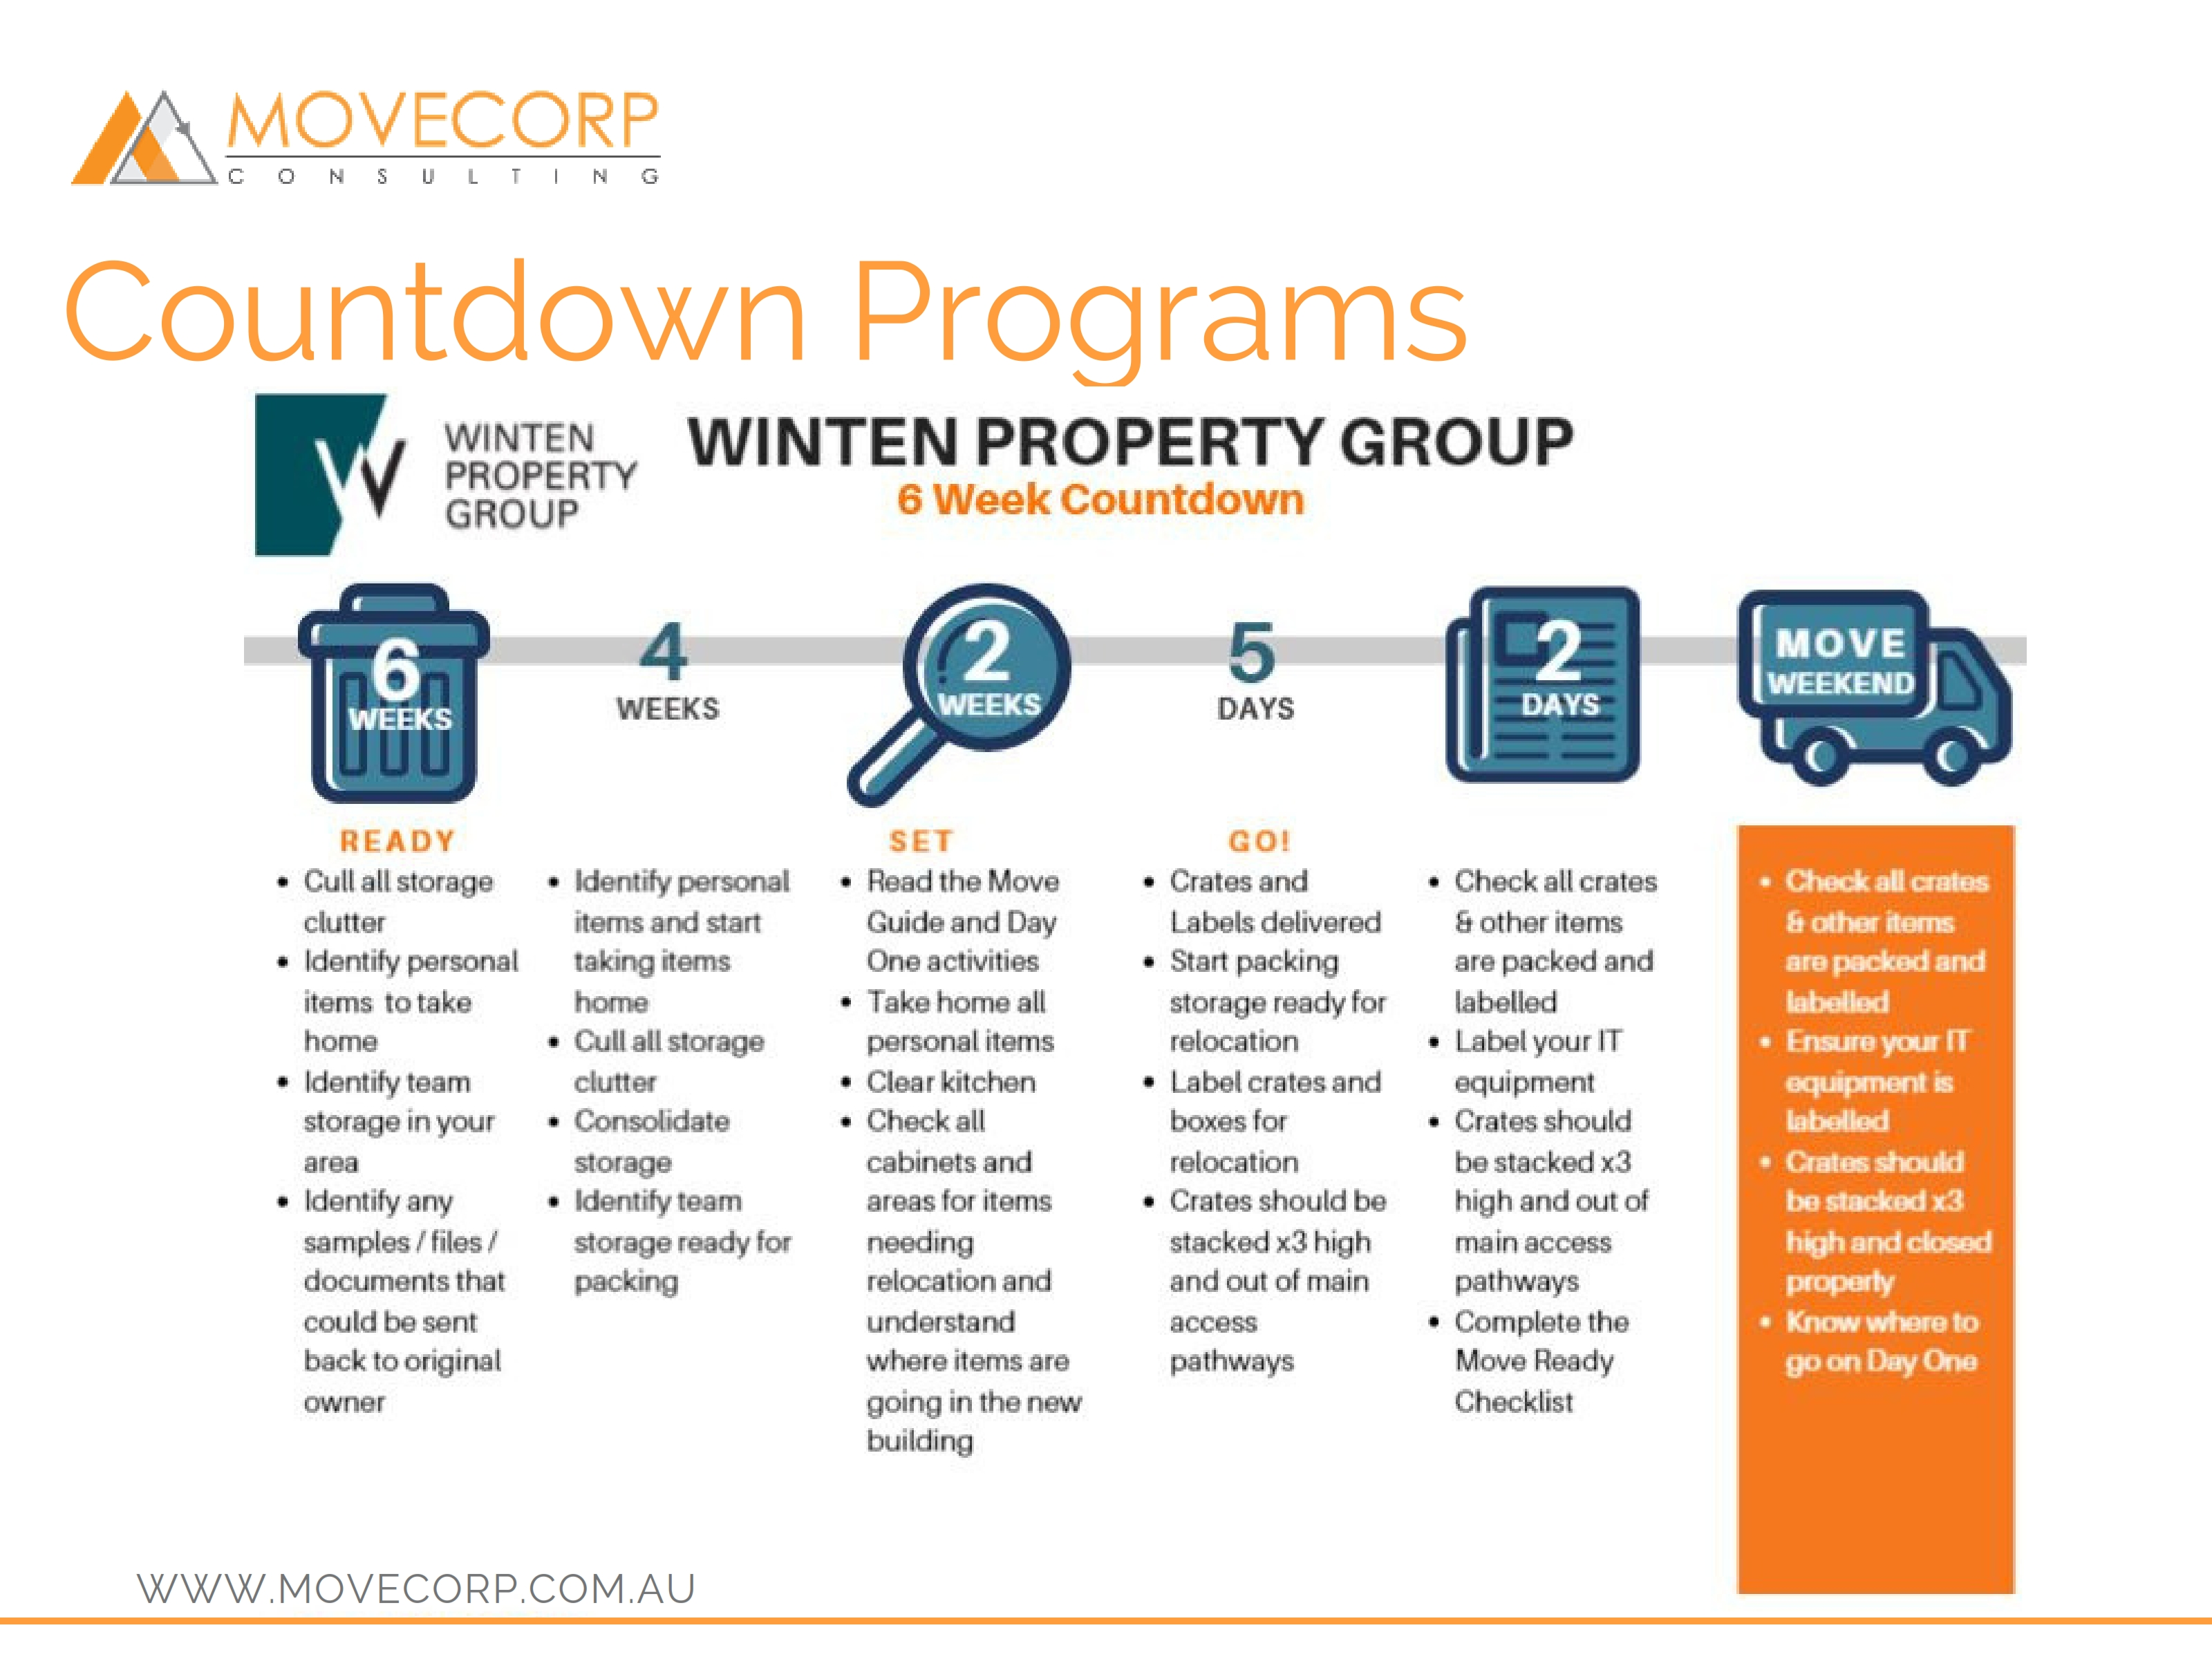 MoveCorp Relocation & Change Methodology (1)_012